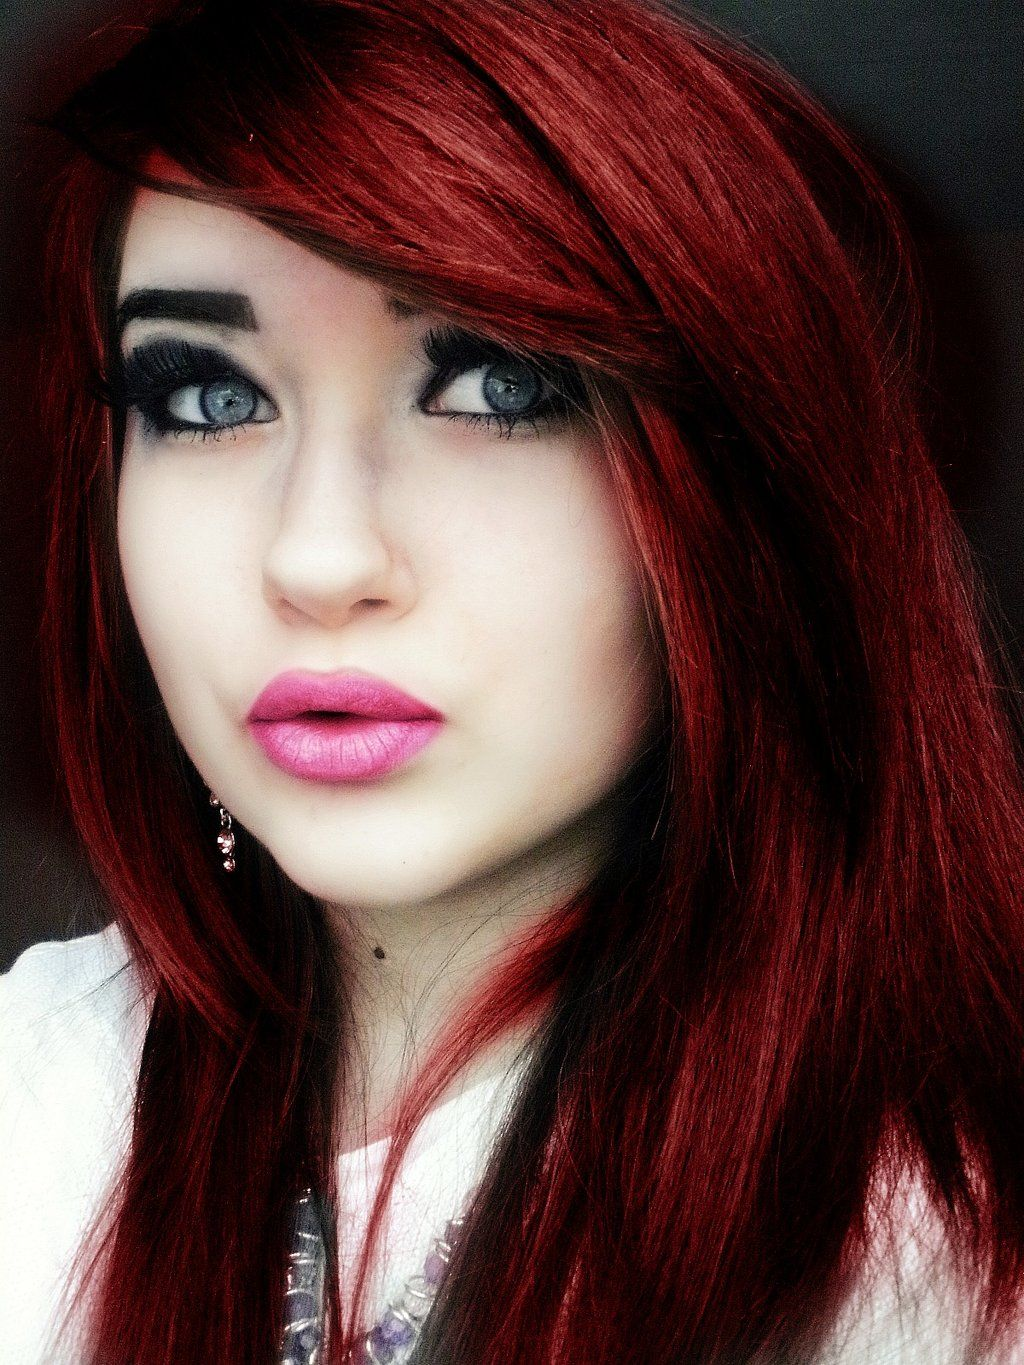 Matching Eyebrows To Hair Color Hair Color Formulas Red Violet Hair Violet Hair Colors